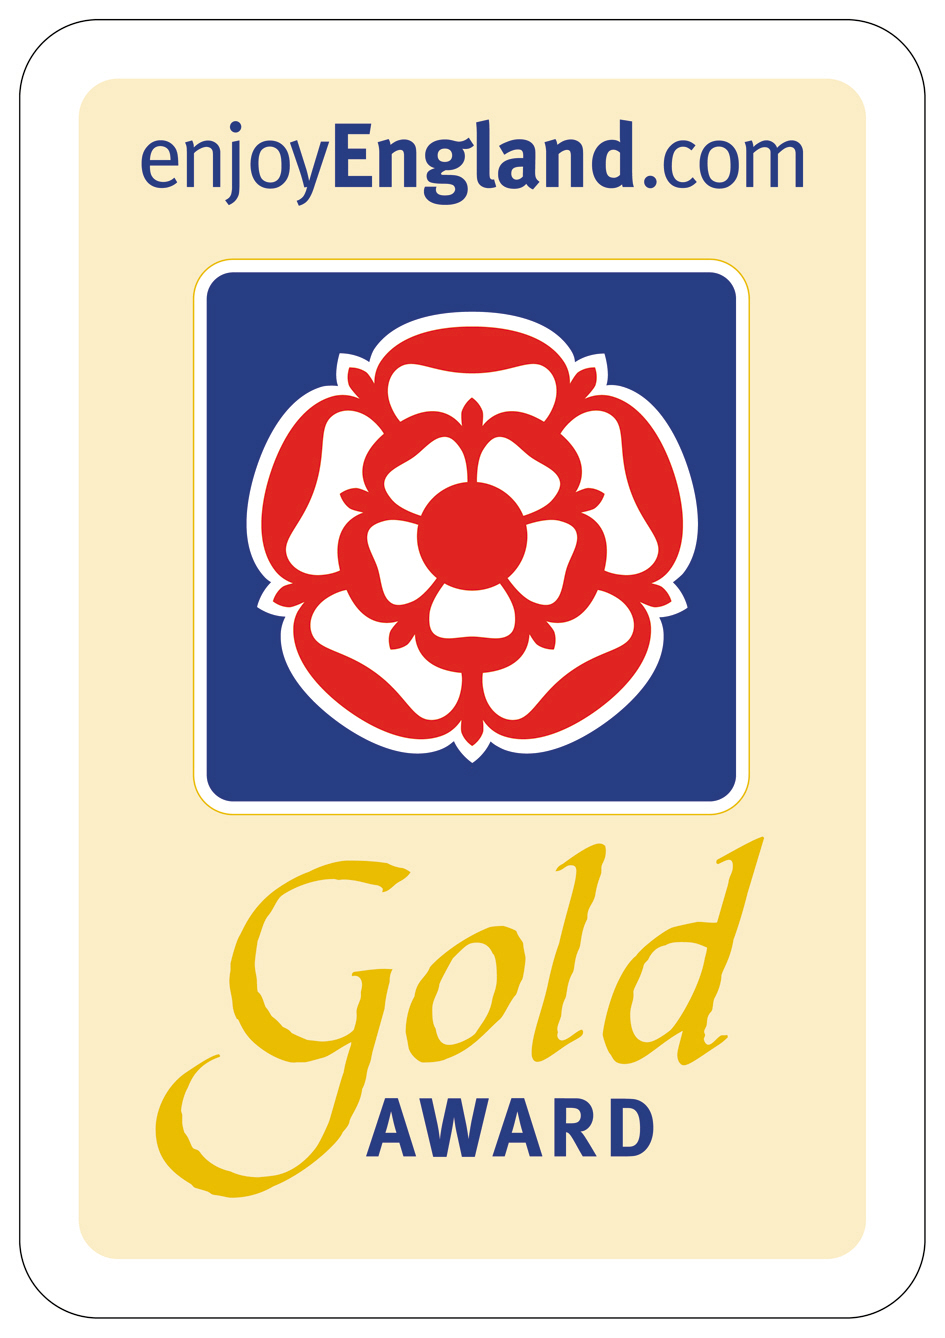 Enjoy-England-gold-award-logo.jpg